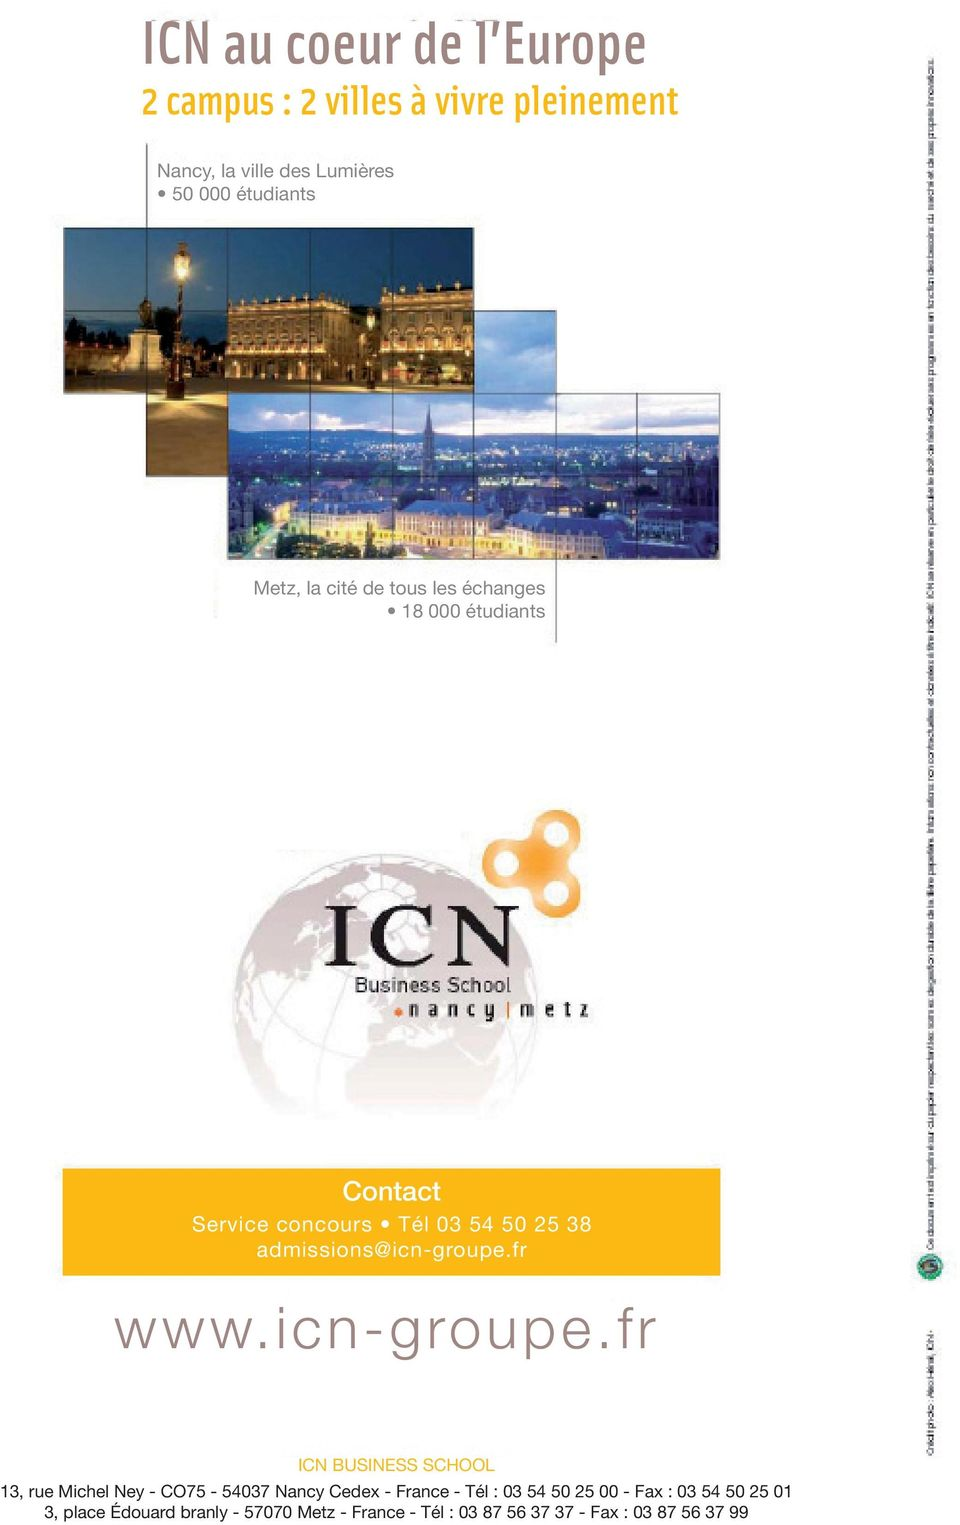 admissions@icn-groupe.